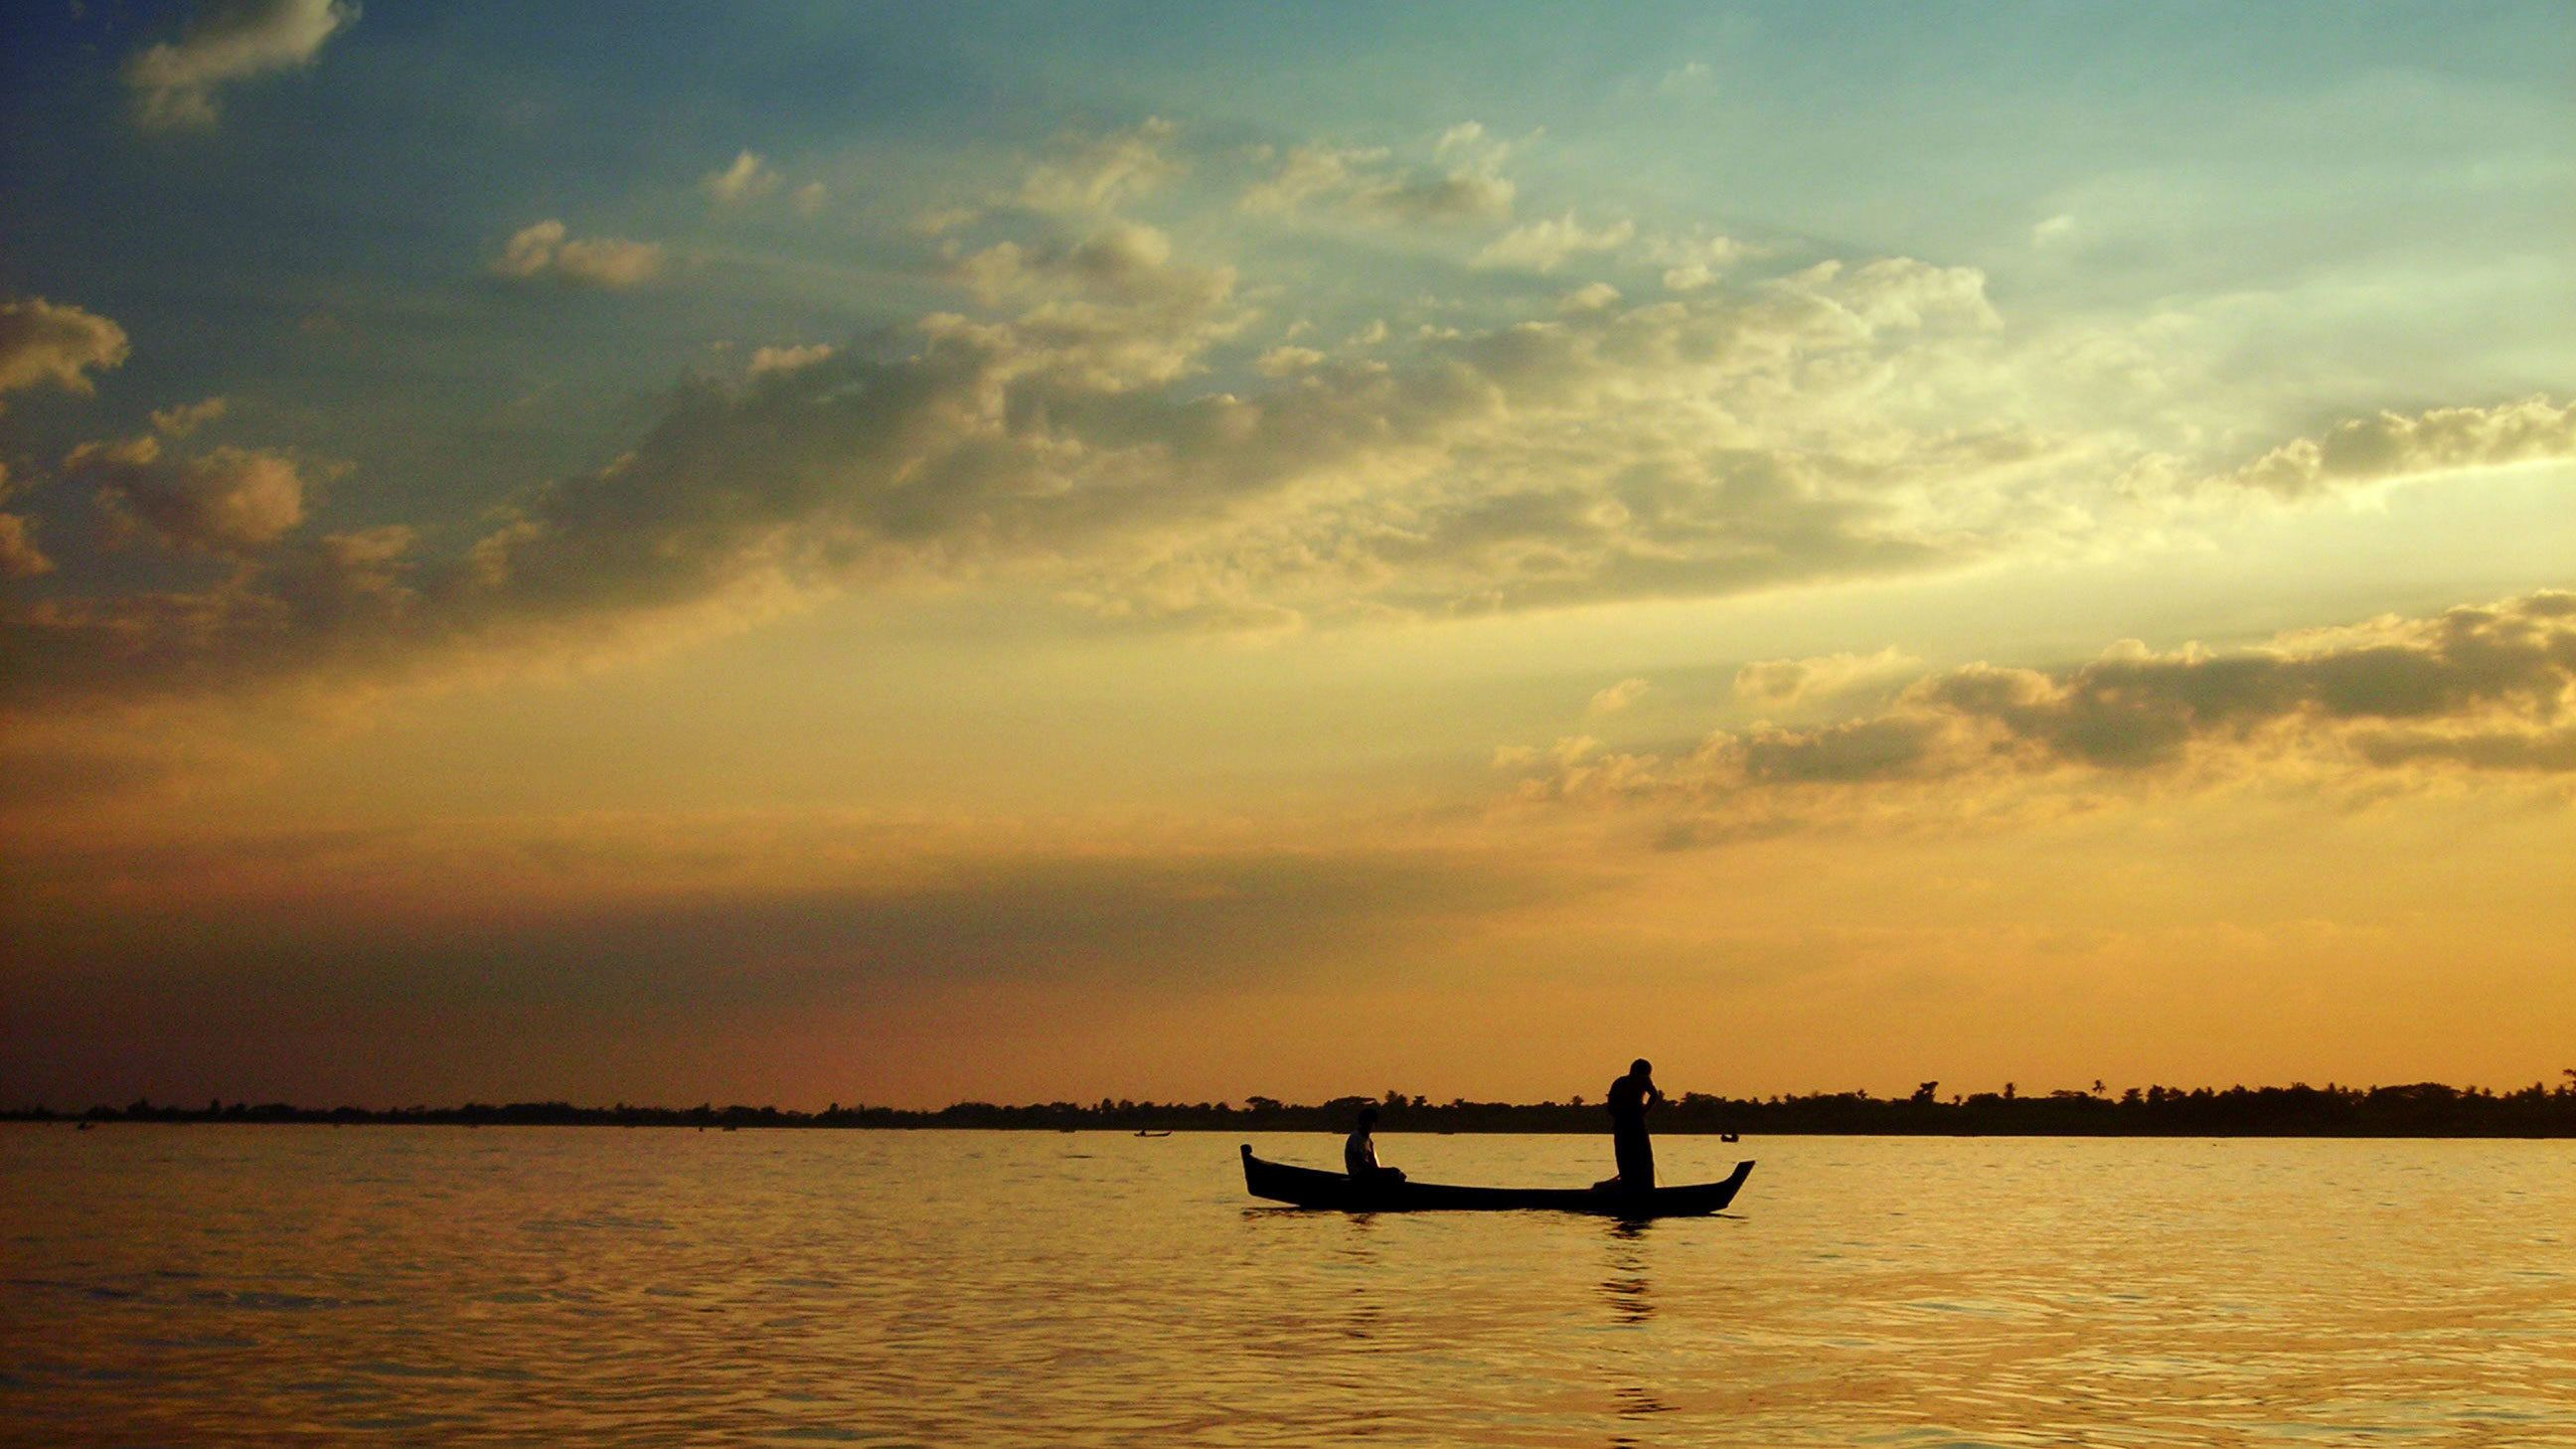 Silhouette of a boating couple on the Yangon River at sunset in Myanmar